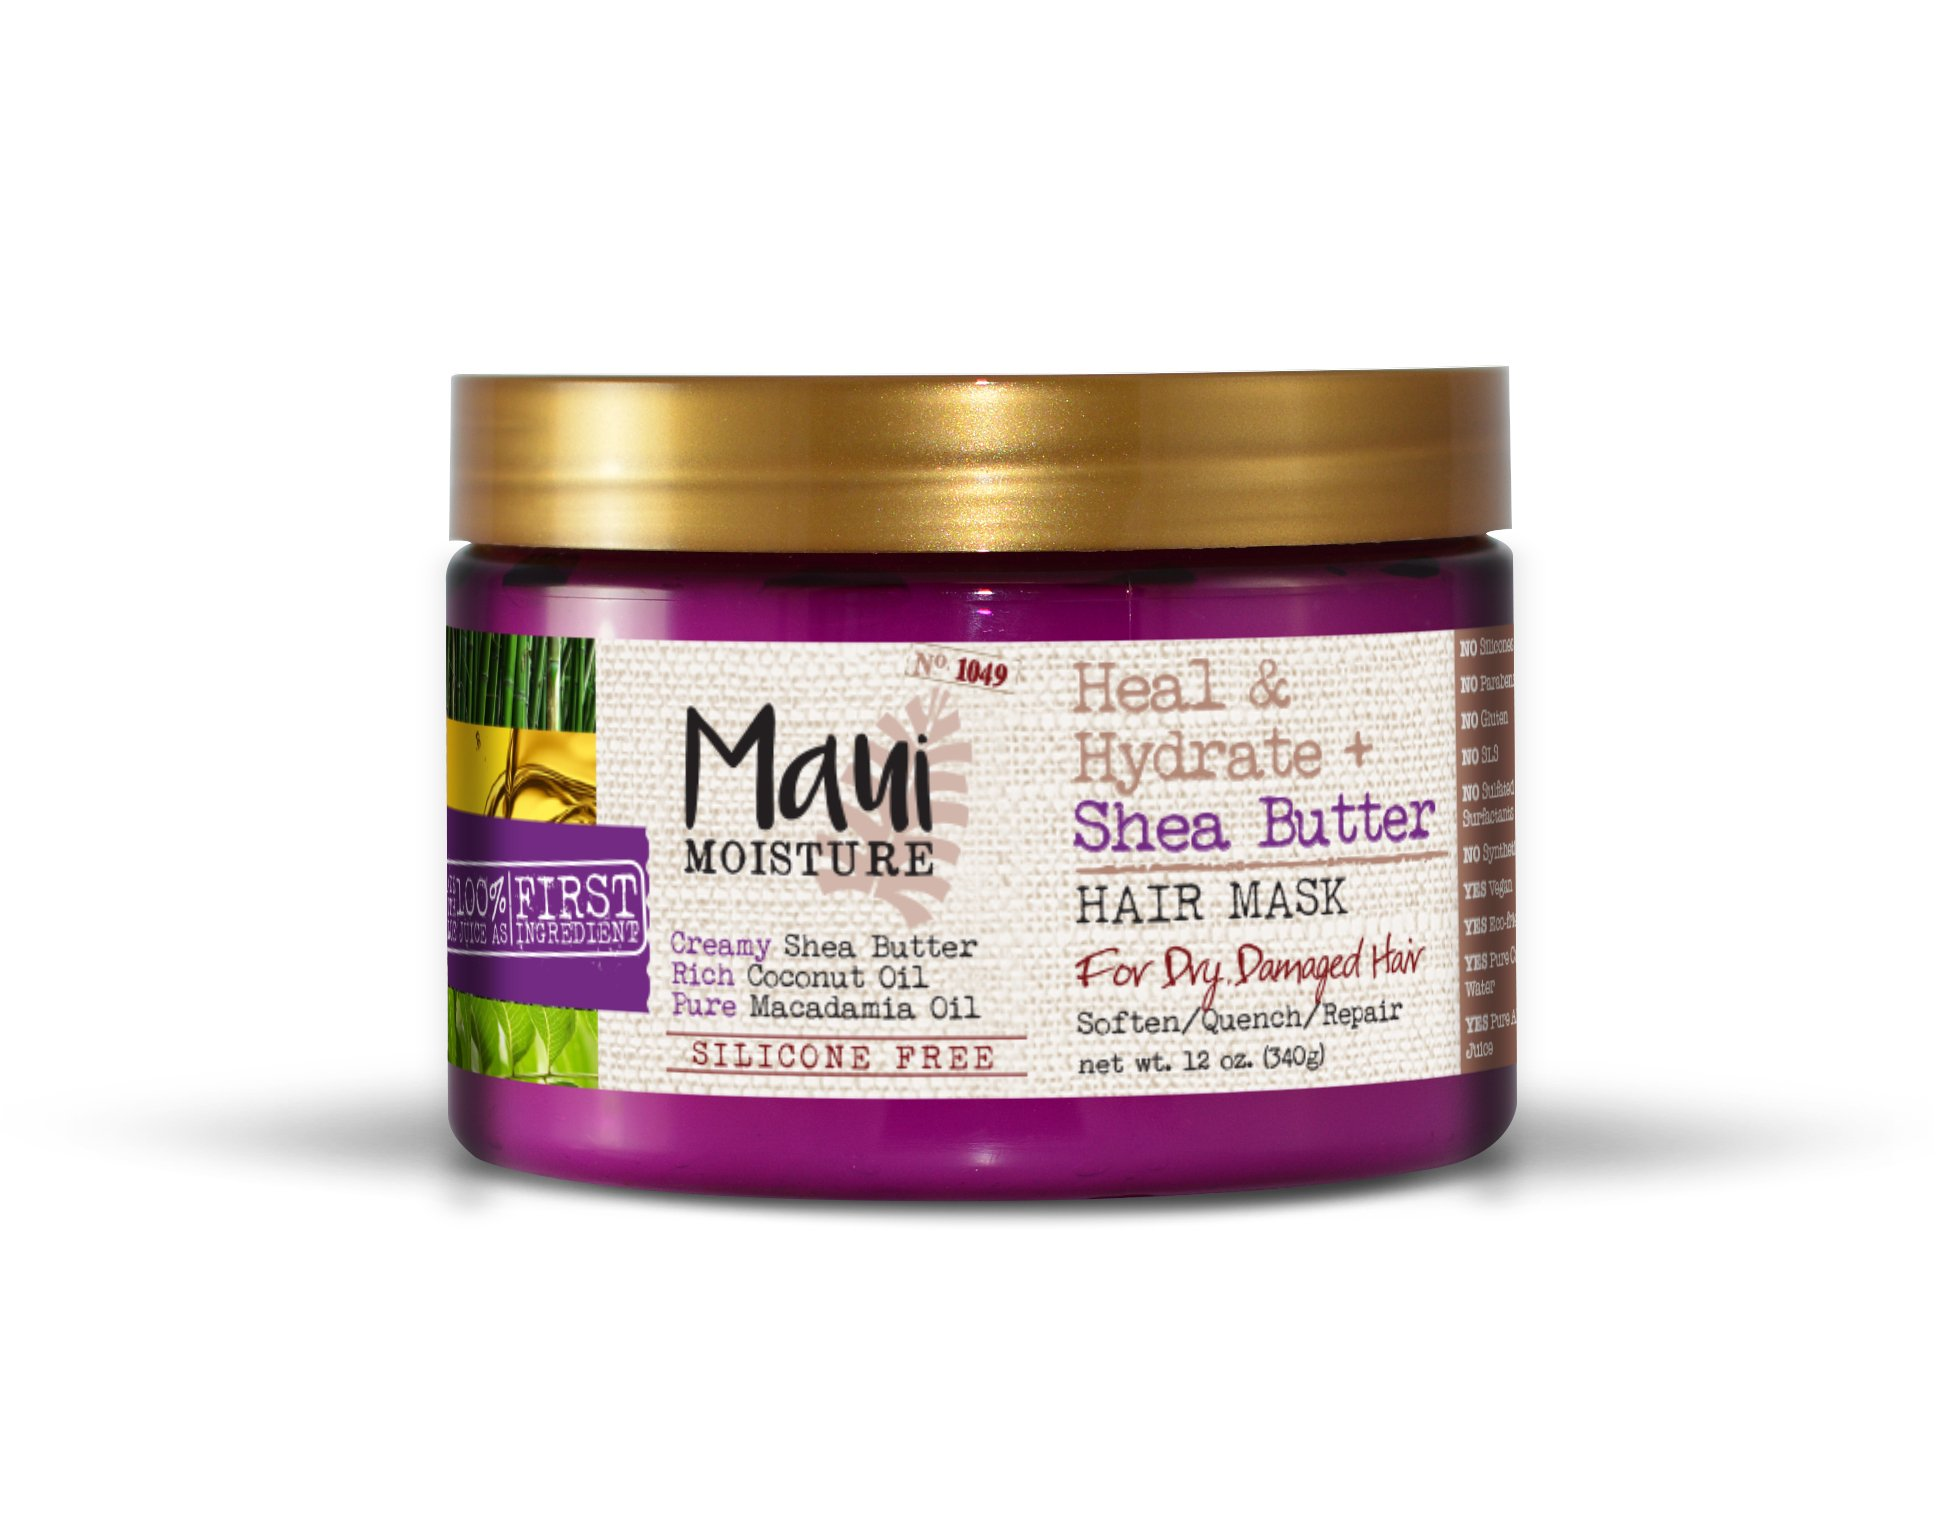 Maui Moisture Heal & Hydrate + Shea Butter Hair Mask, 12 Ounce, Silicone Free with Shea Butter and Coconut Oil, For Softer Feeling Hair with Less Visible Split Ends, Can Be Uses as Leave In Treatment